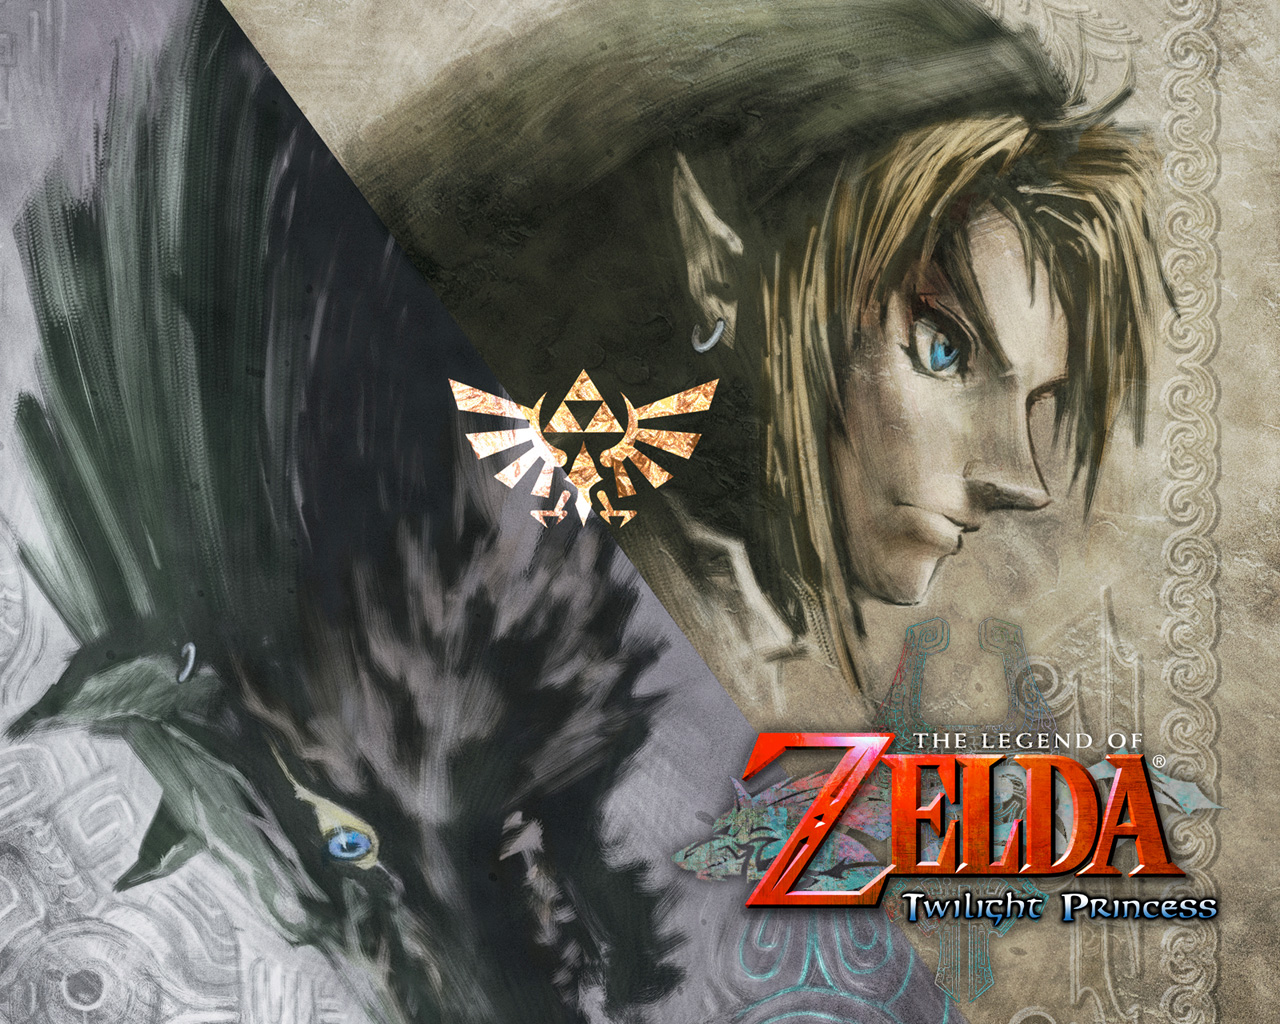 Twilight Princess Wallpaperjpgtwilight20princess201280x1024 1280x1024